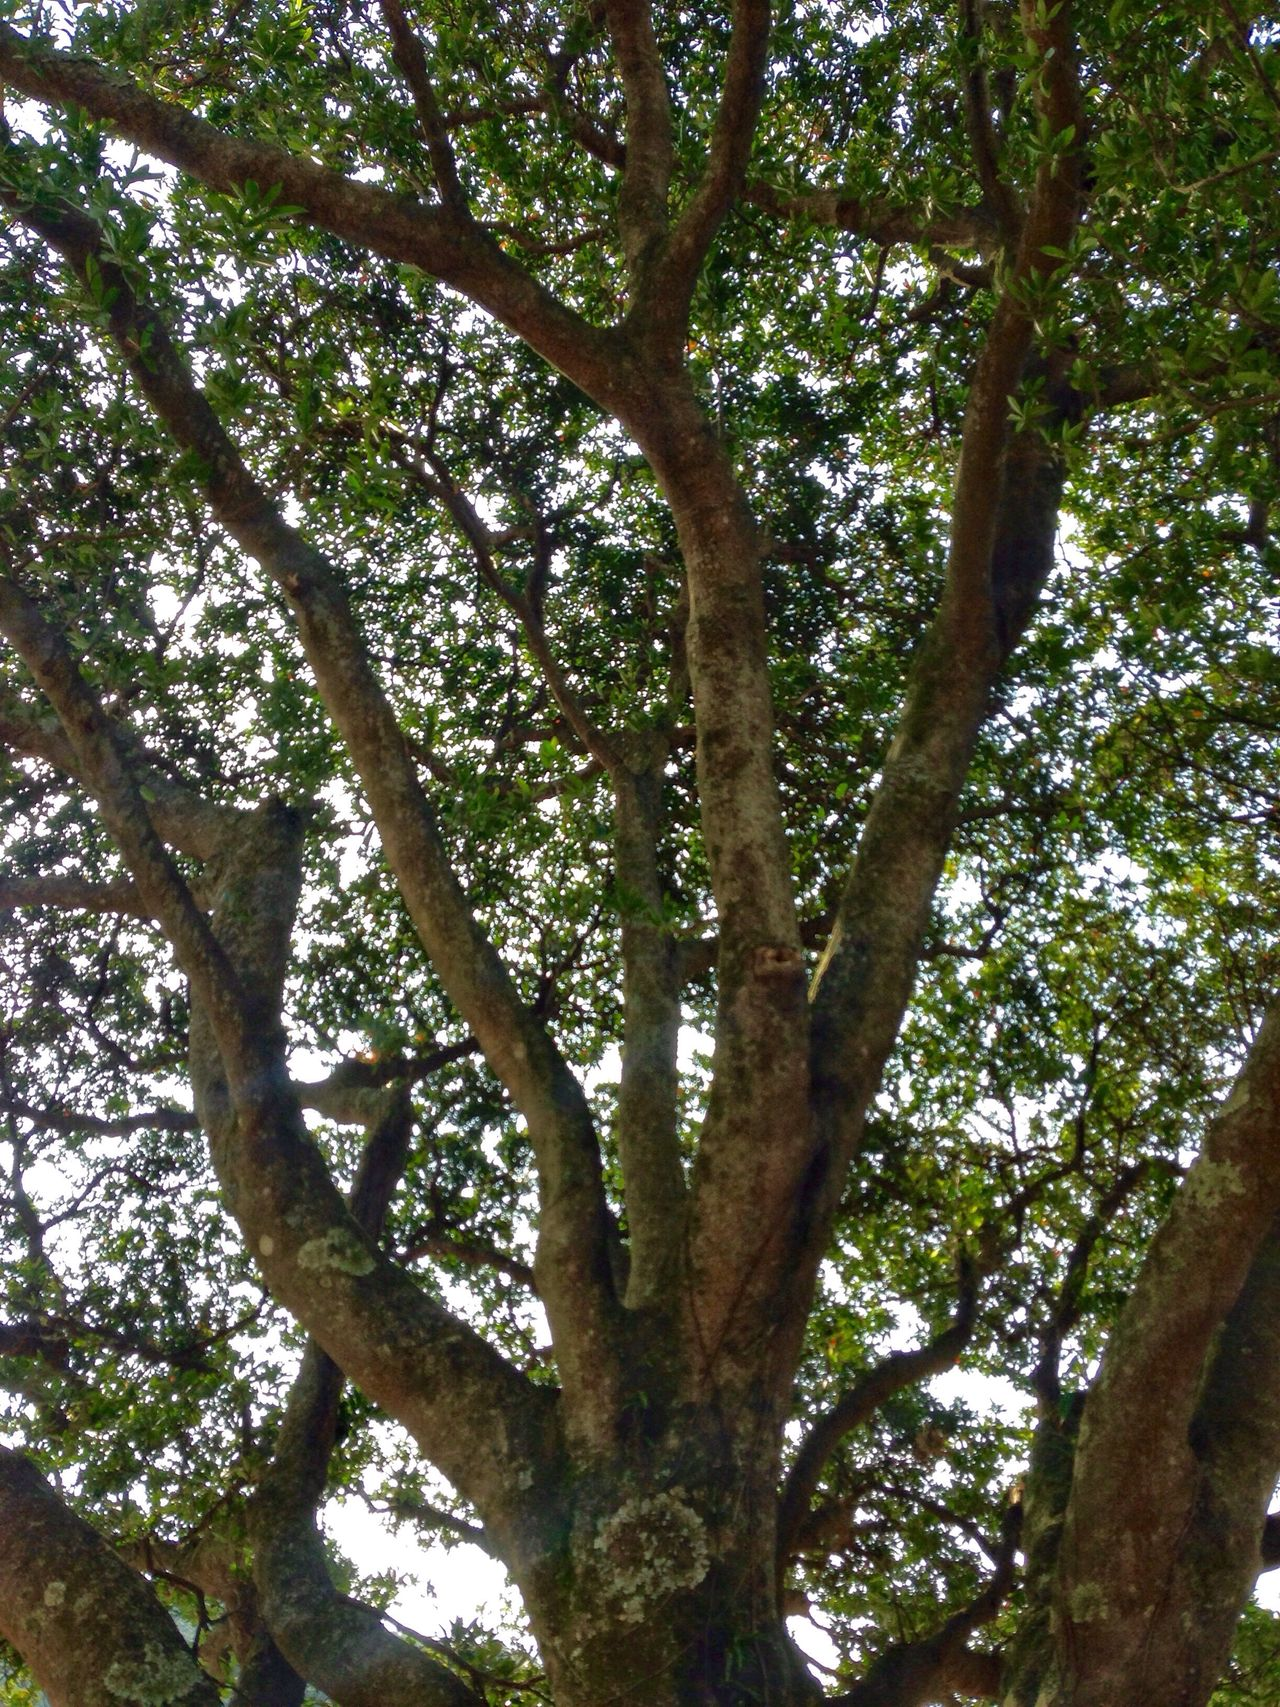 Tree Tree Trunk Treetop Tree Branches Tree Nature Low Angle View Growth Branch No People Outdoors Beauty In Nature Day Saikai City Japan